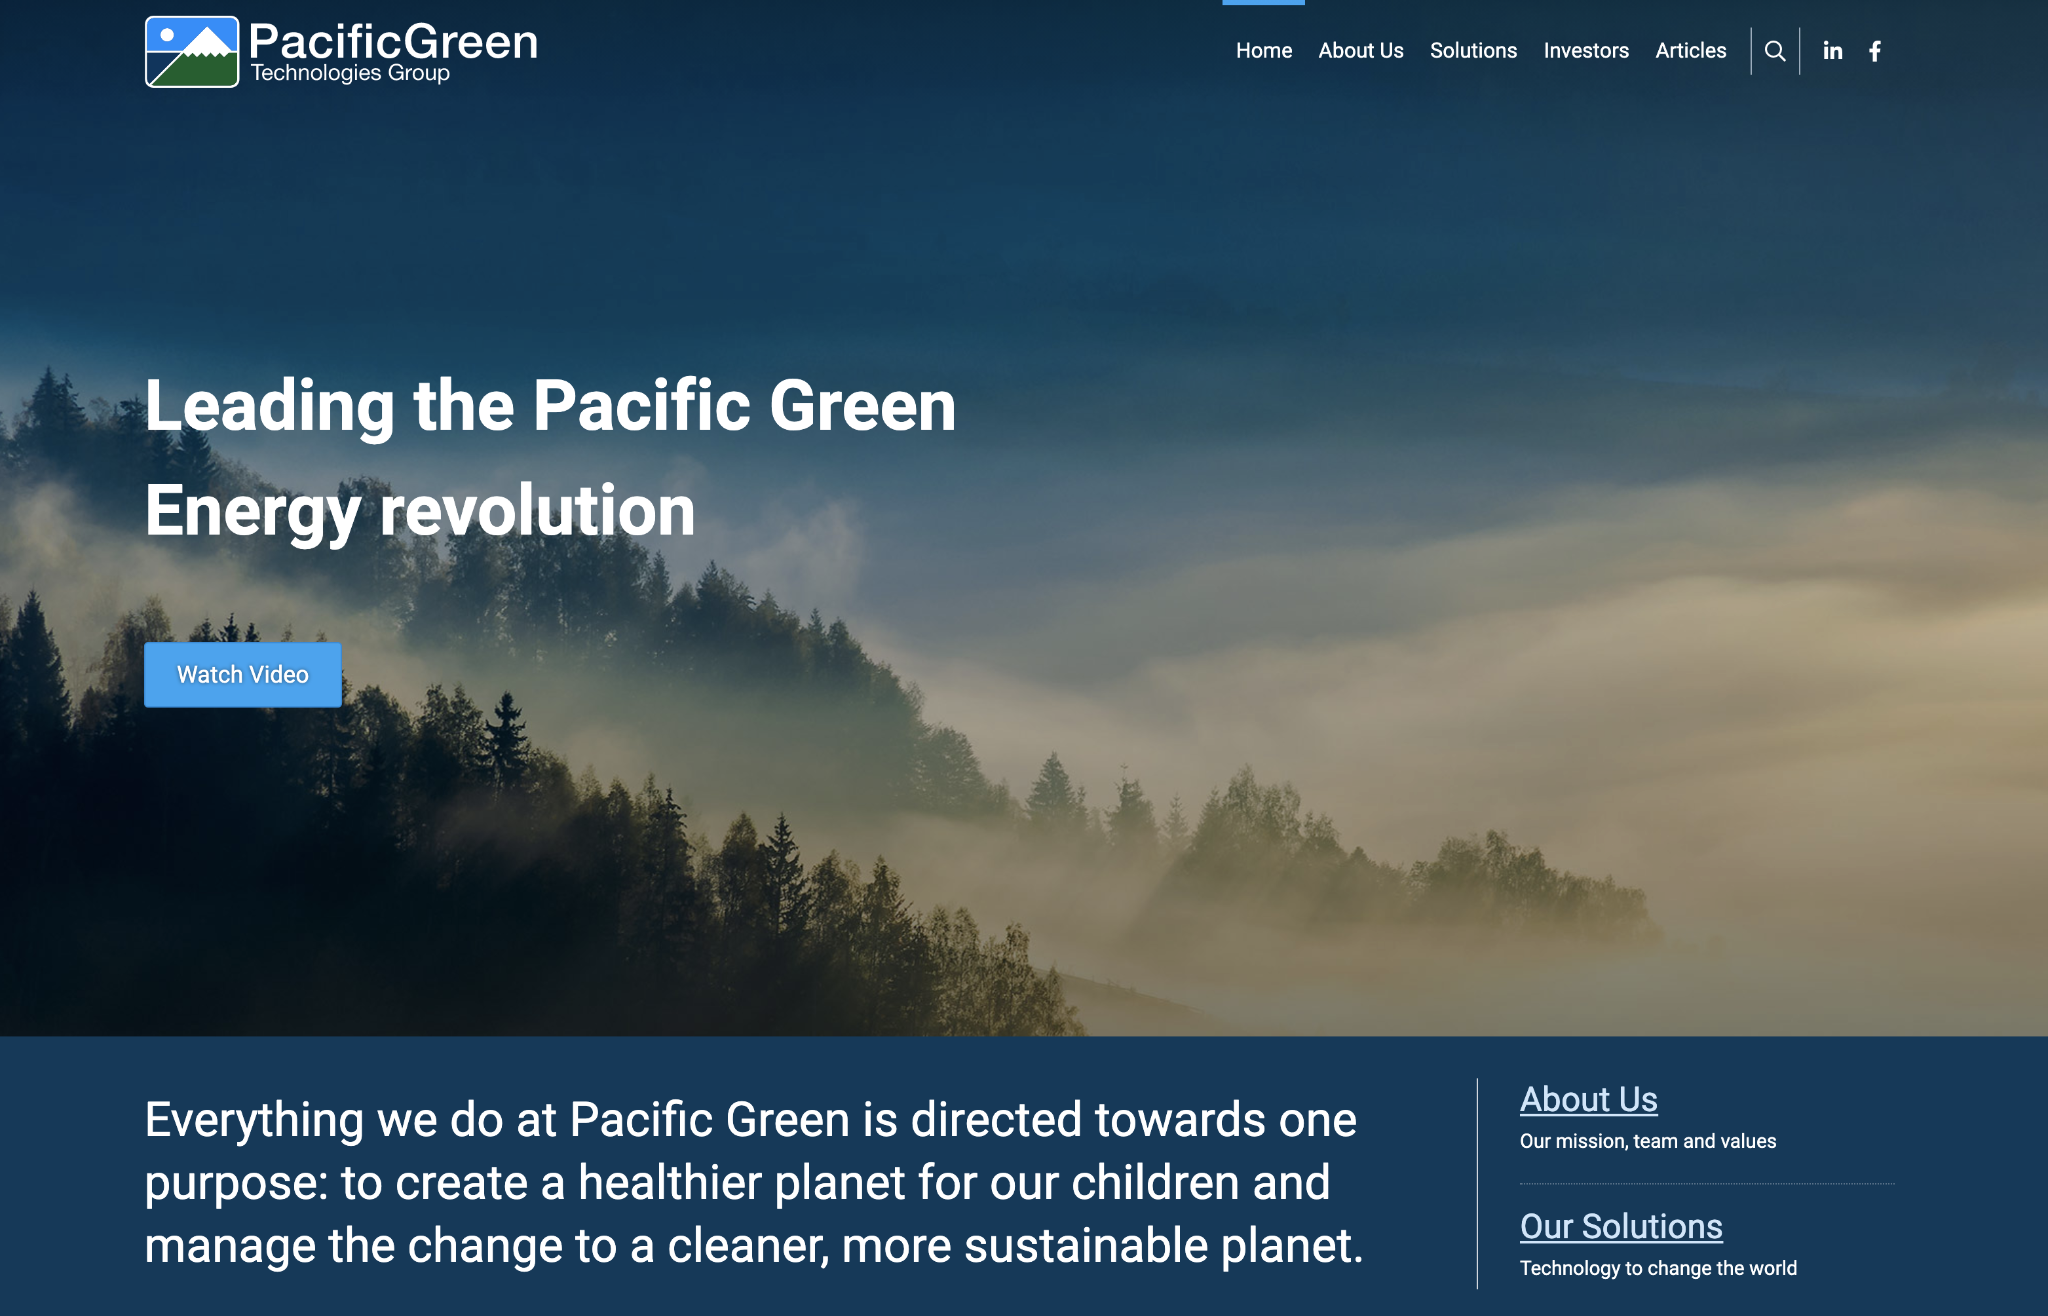 PacificGreen Technologies Group website